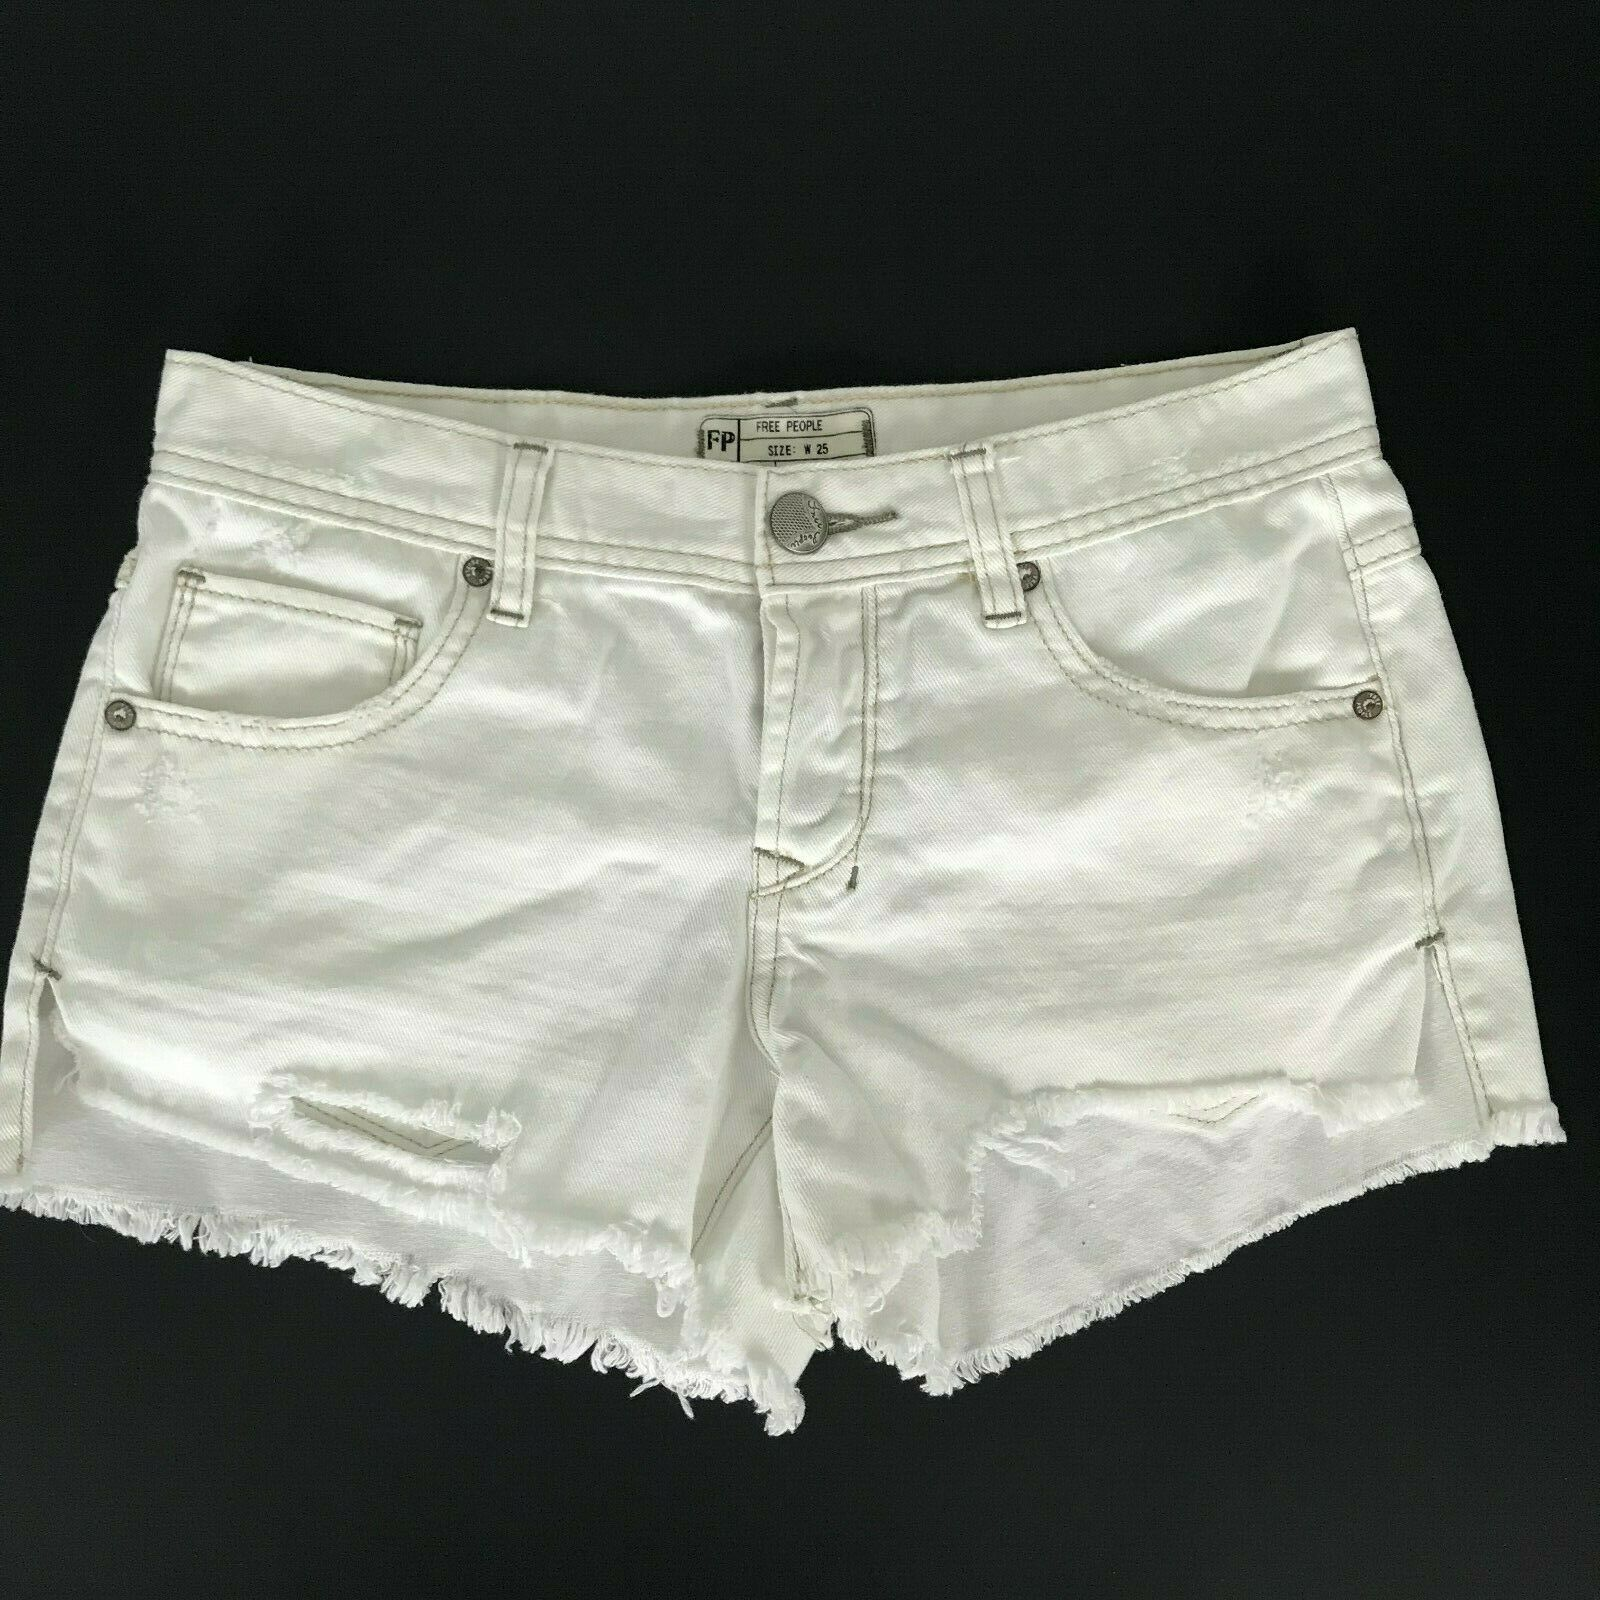 Free People Womens Shorts Size 25 White Distressed Button Fly Raw Hem Casual